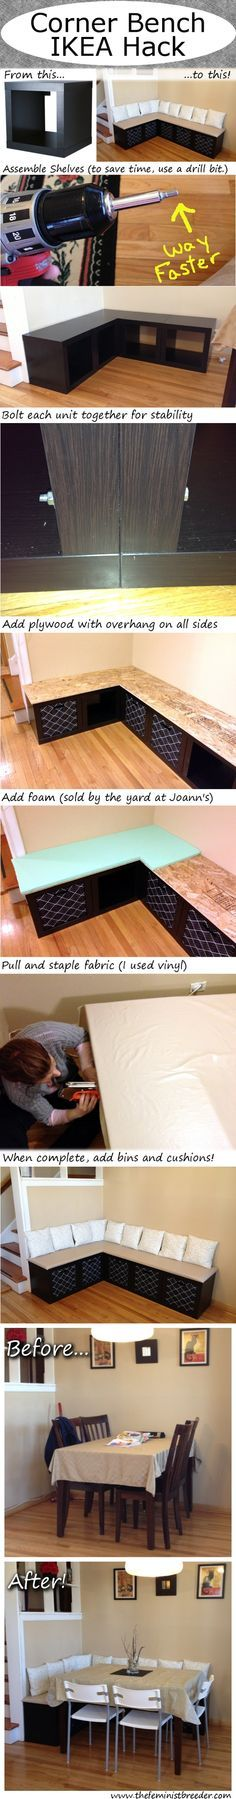 A corner bench with storage made from IKEA wall shelves and upholstering.  Or, just do one side instead of a corner and use for mudroom seating.